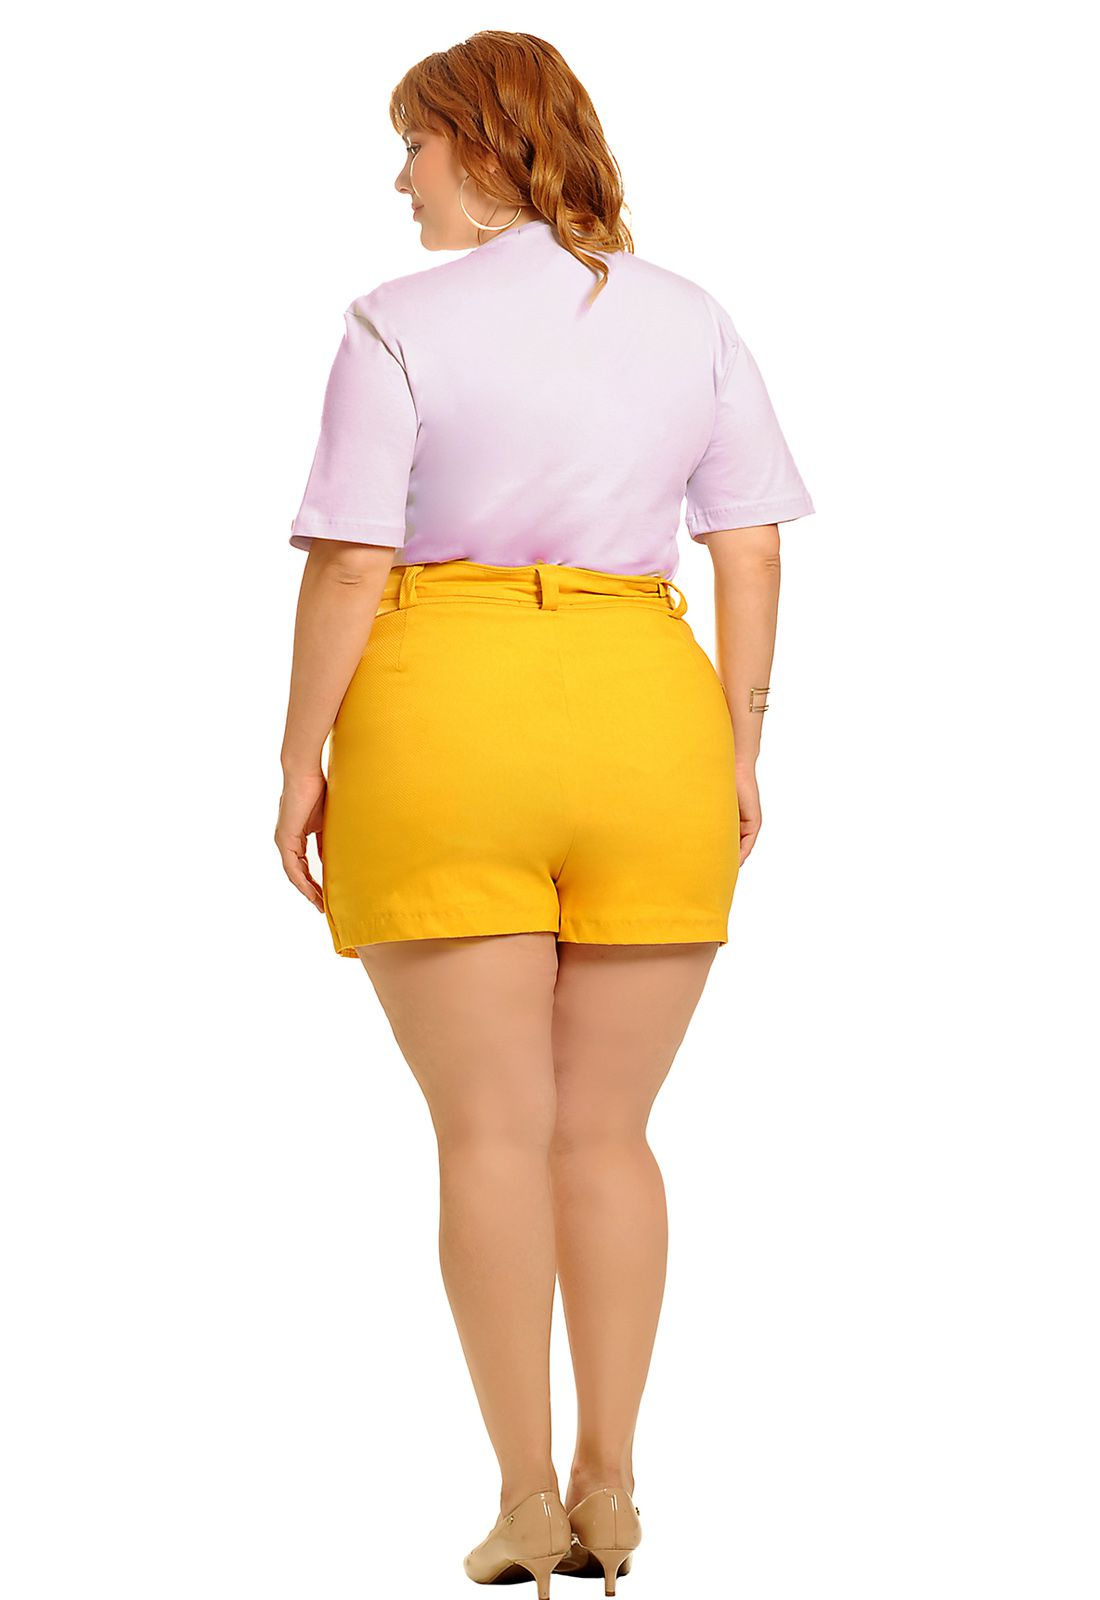 Camiseta long line free nipple lavanda plus size